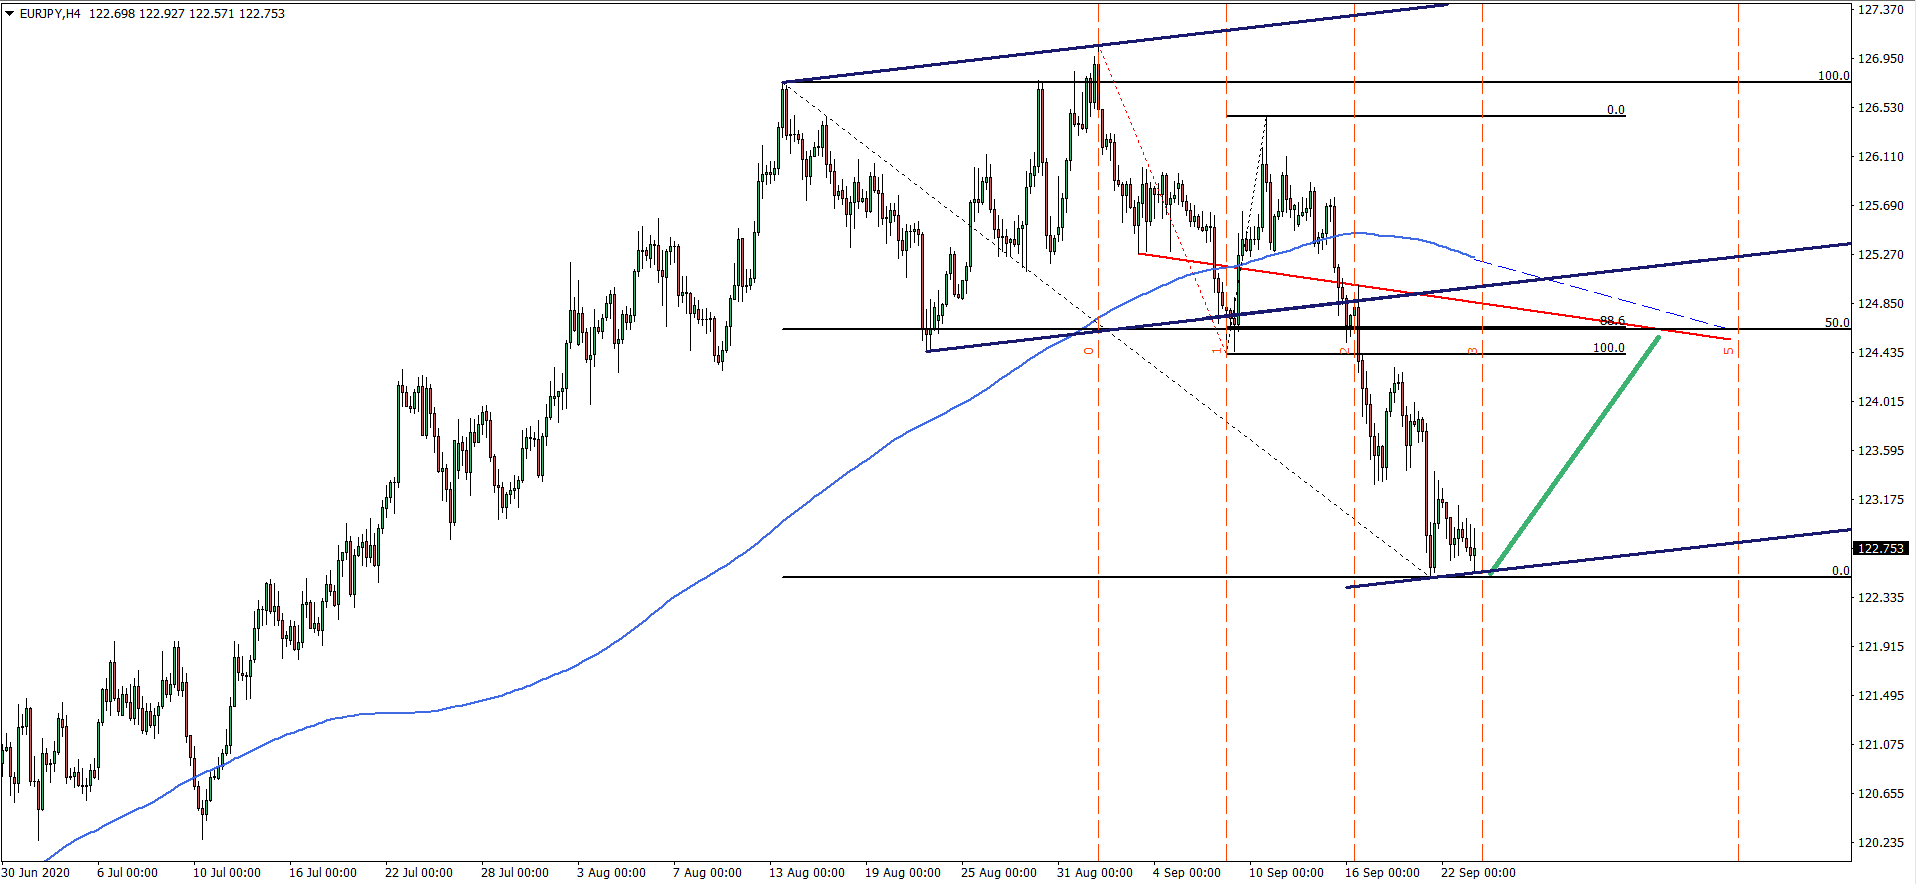 EURJPY 4hour chart Sep 23th 2020